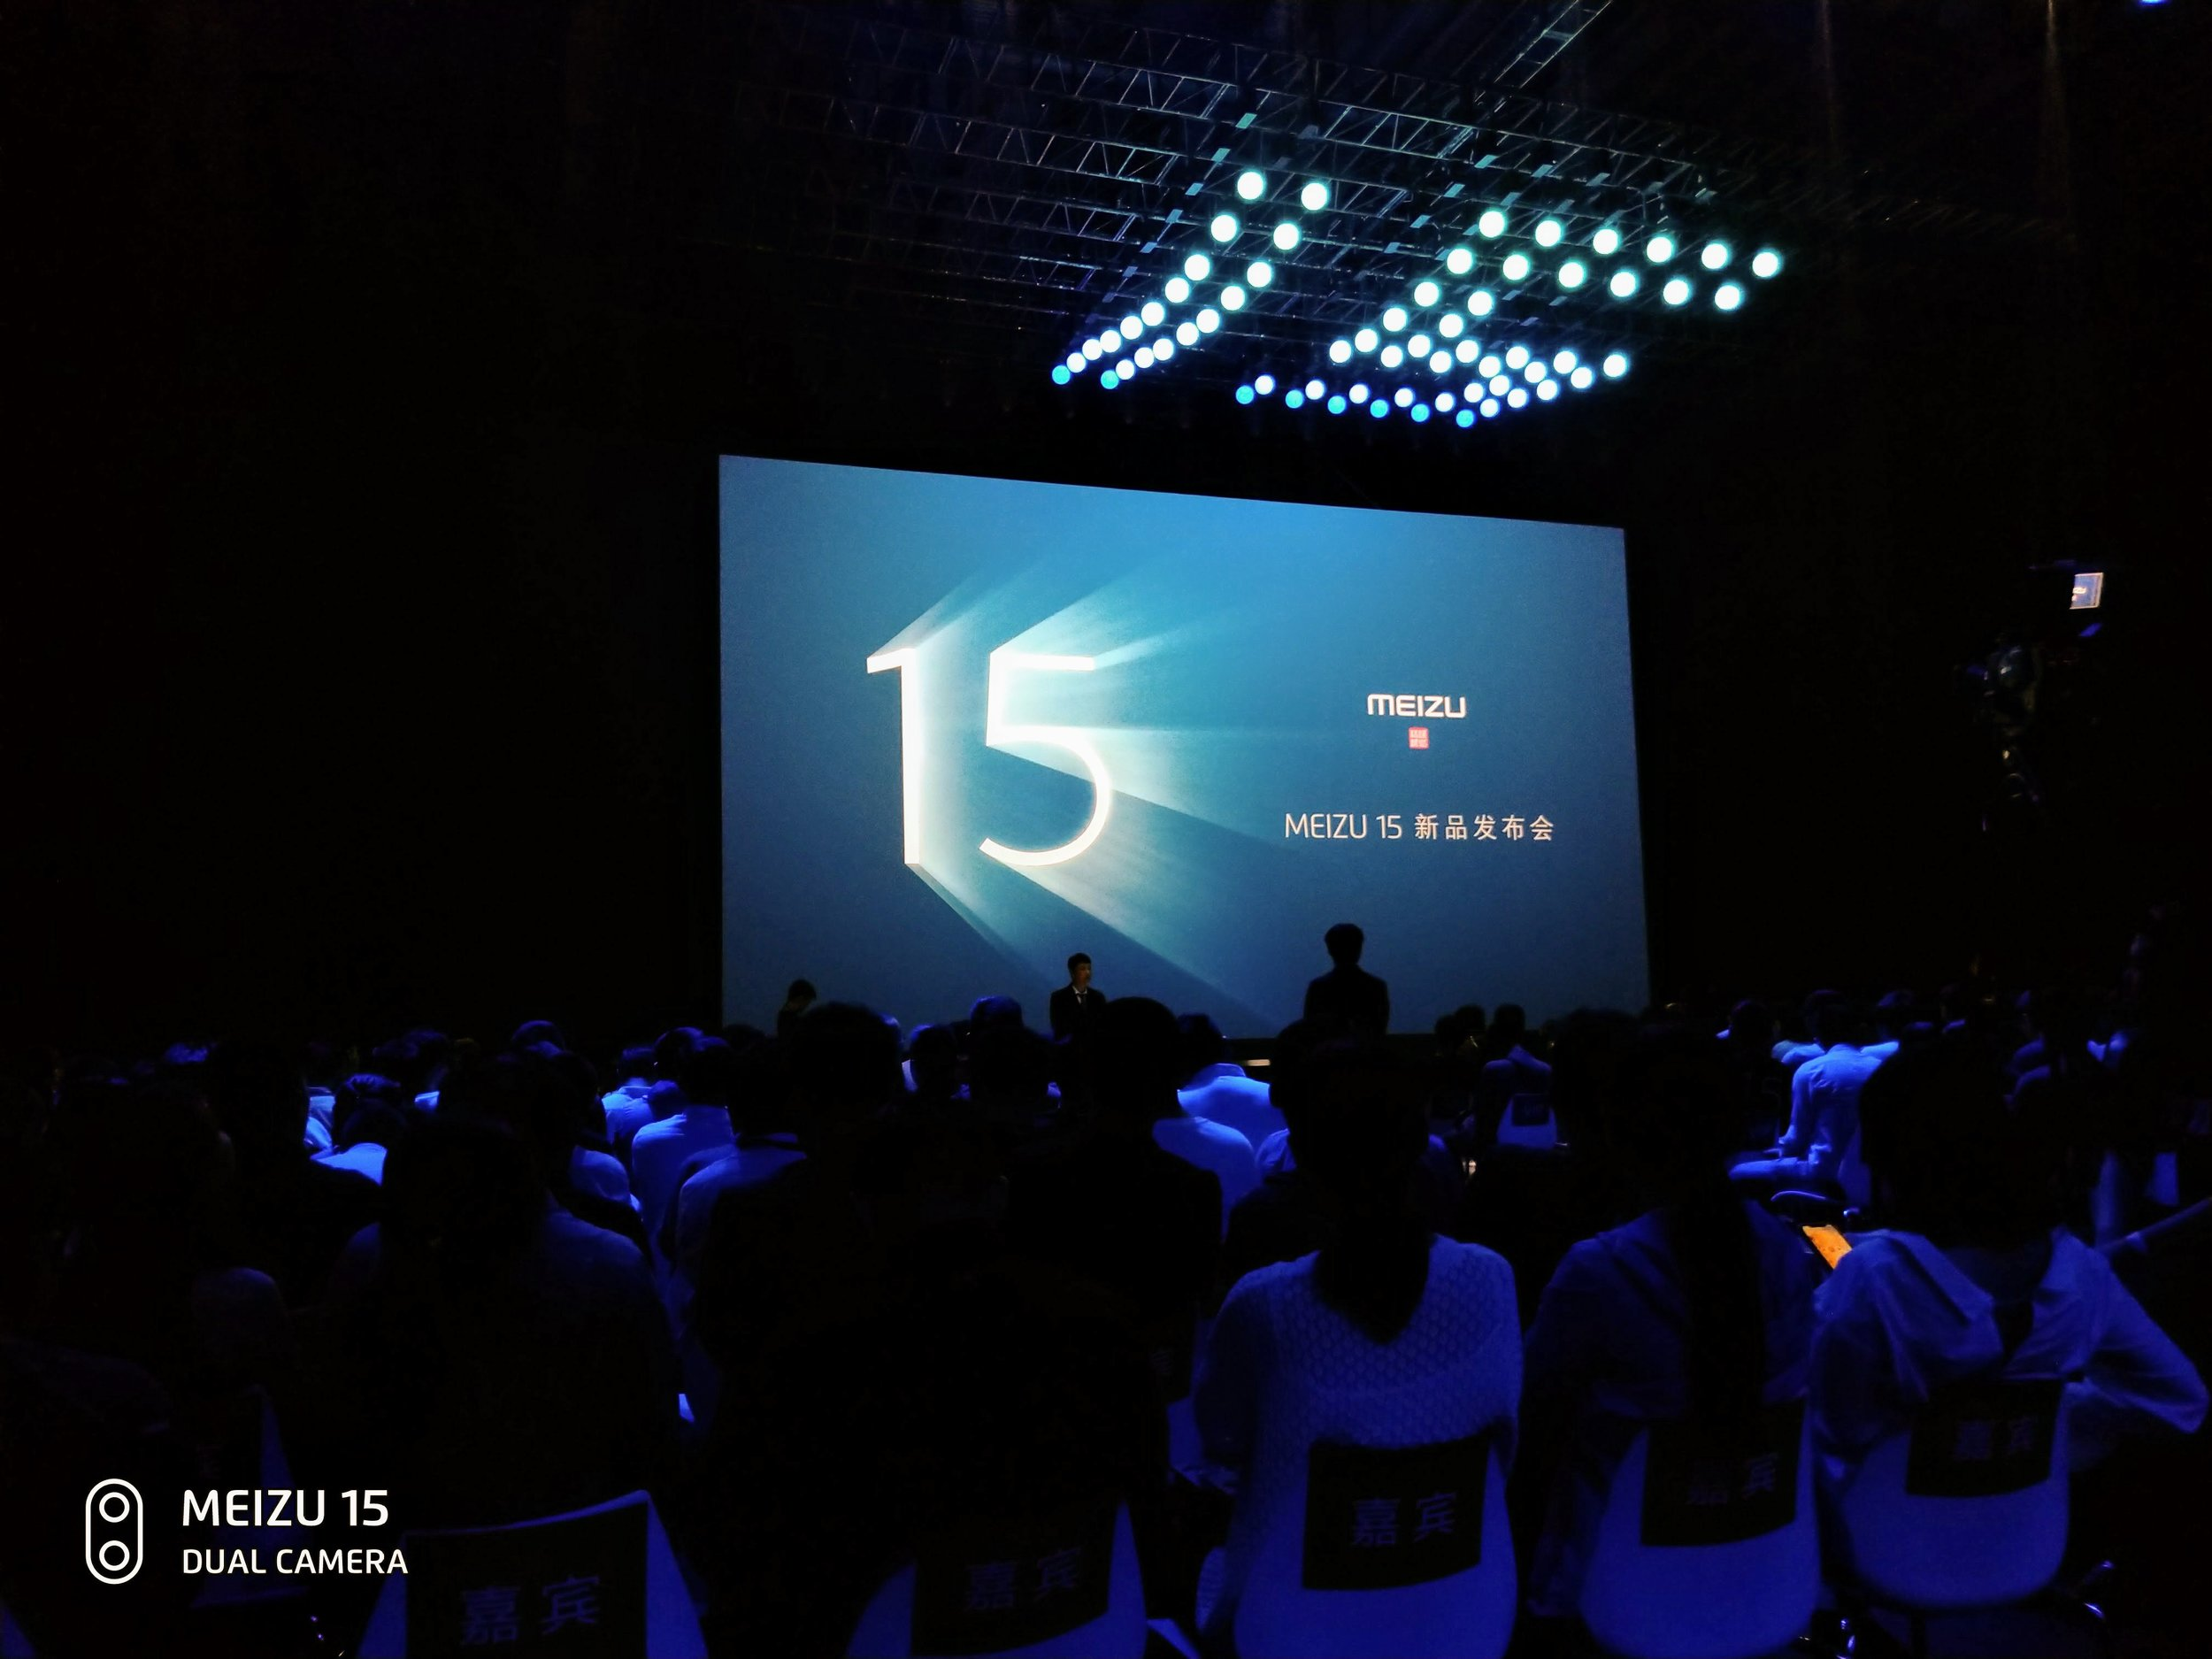 The Meizu 15 Launch stage, as shot on a Meizu 15...